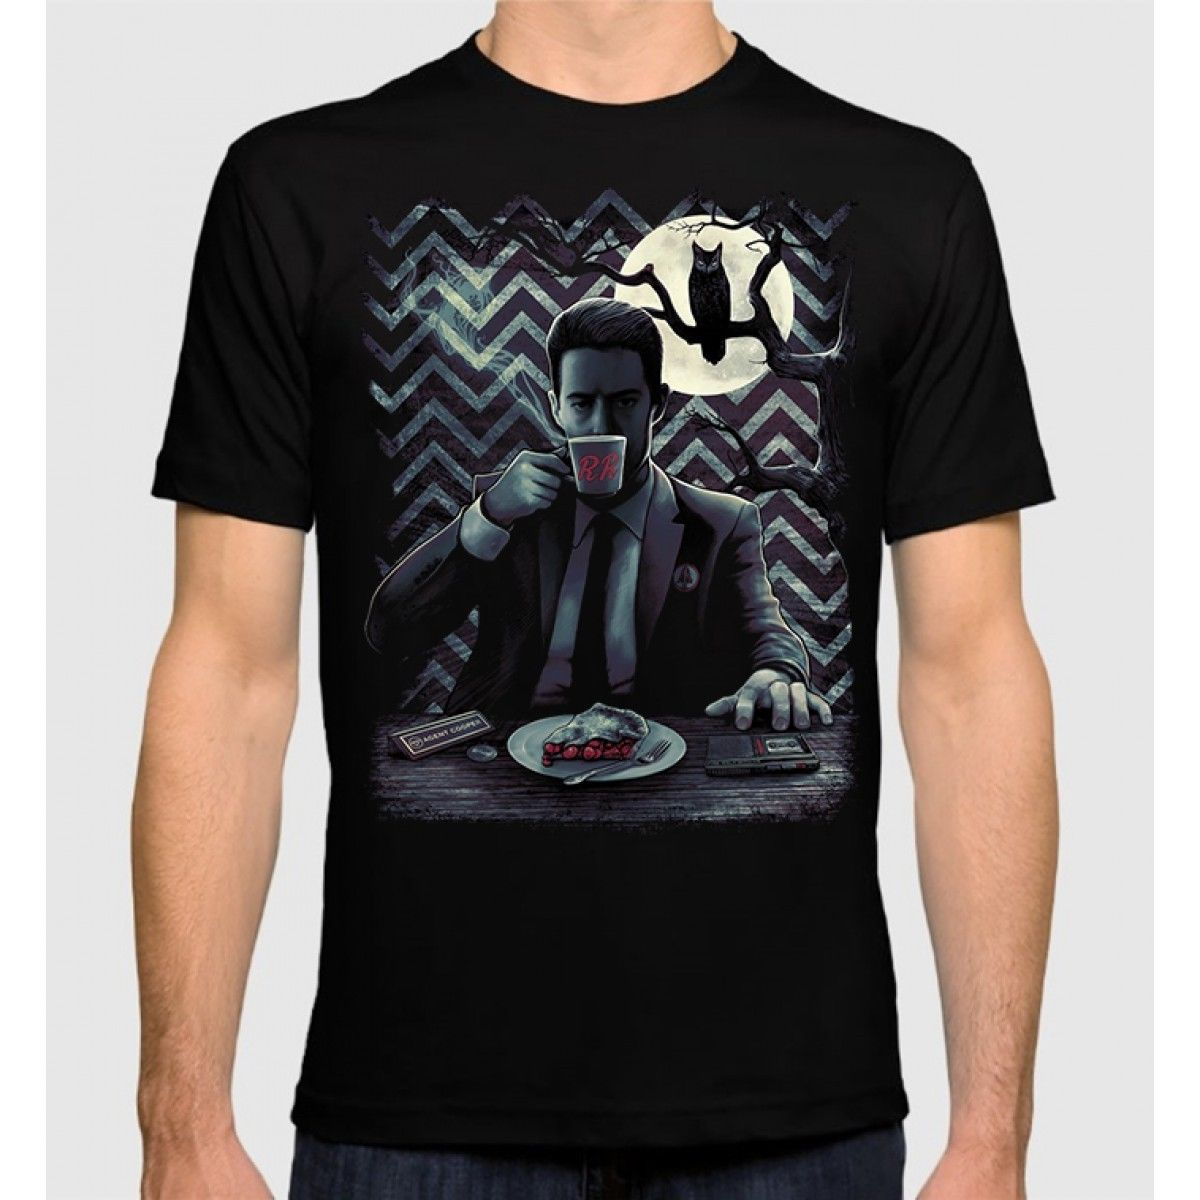 Twin Peaks Agent Cooper T-Shirt David Lynch 100% Cotton New Dale Cooper Tee Novelty Cool Tops MenS Short Sleeve T Shirt